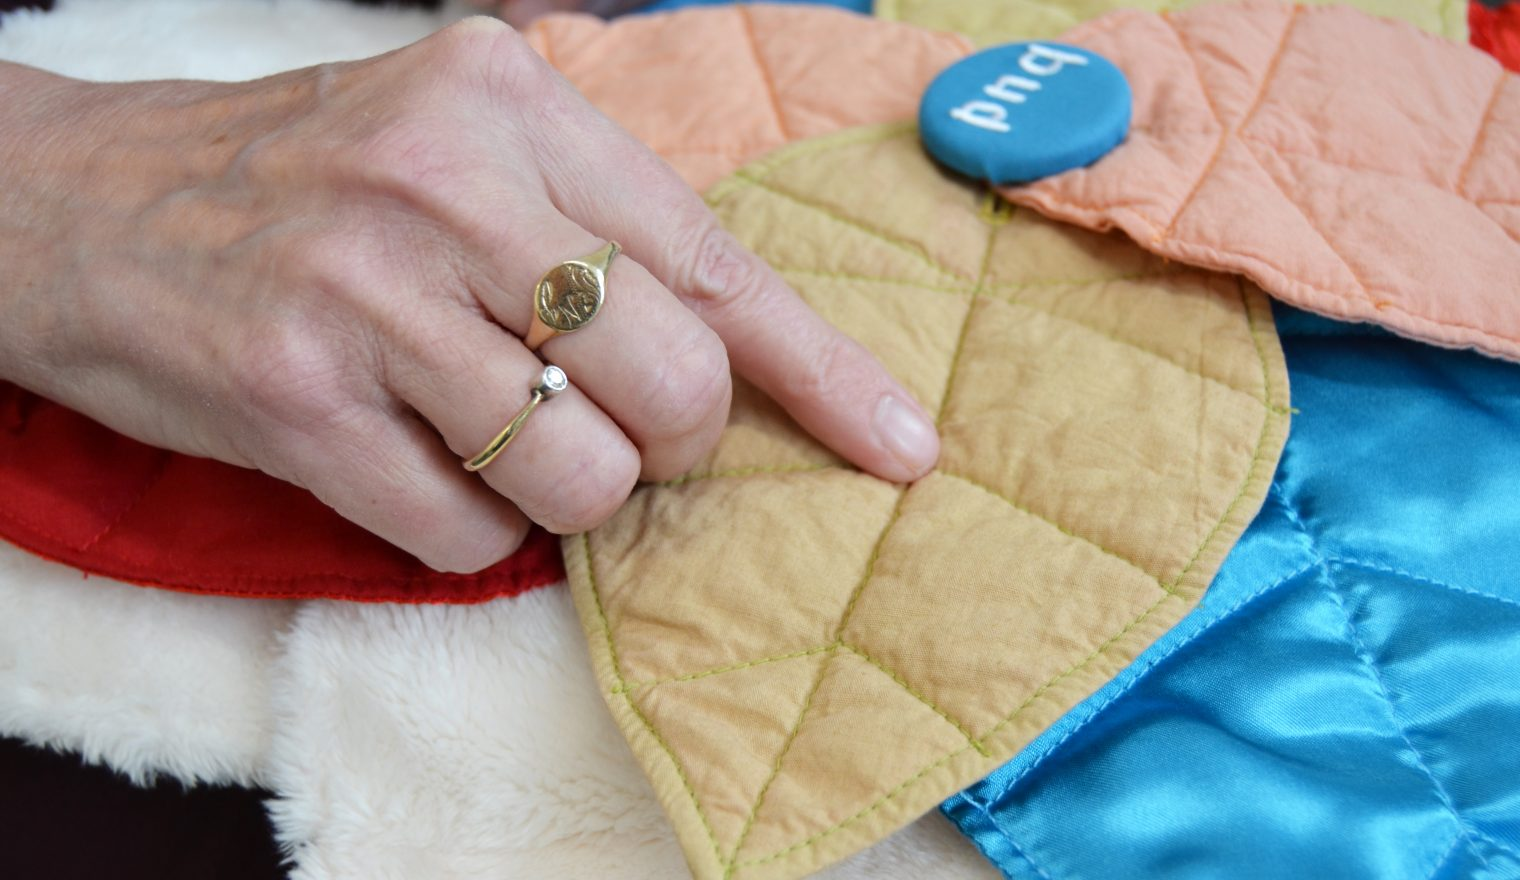 A hand tracing the leaf stitching on a Bud sensory cushion